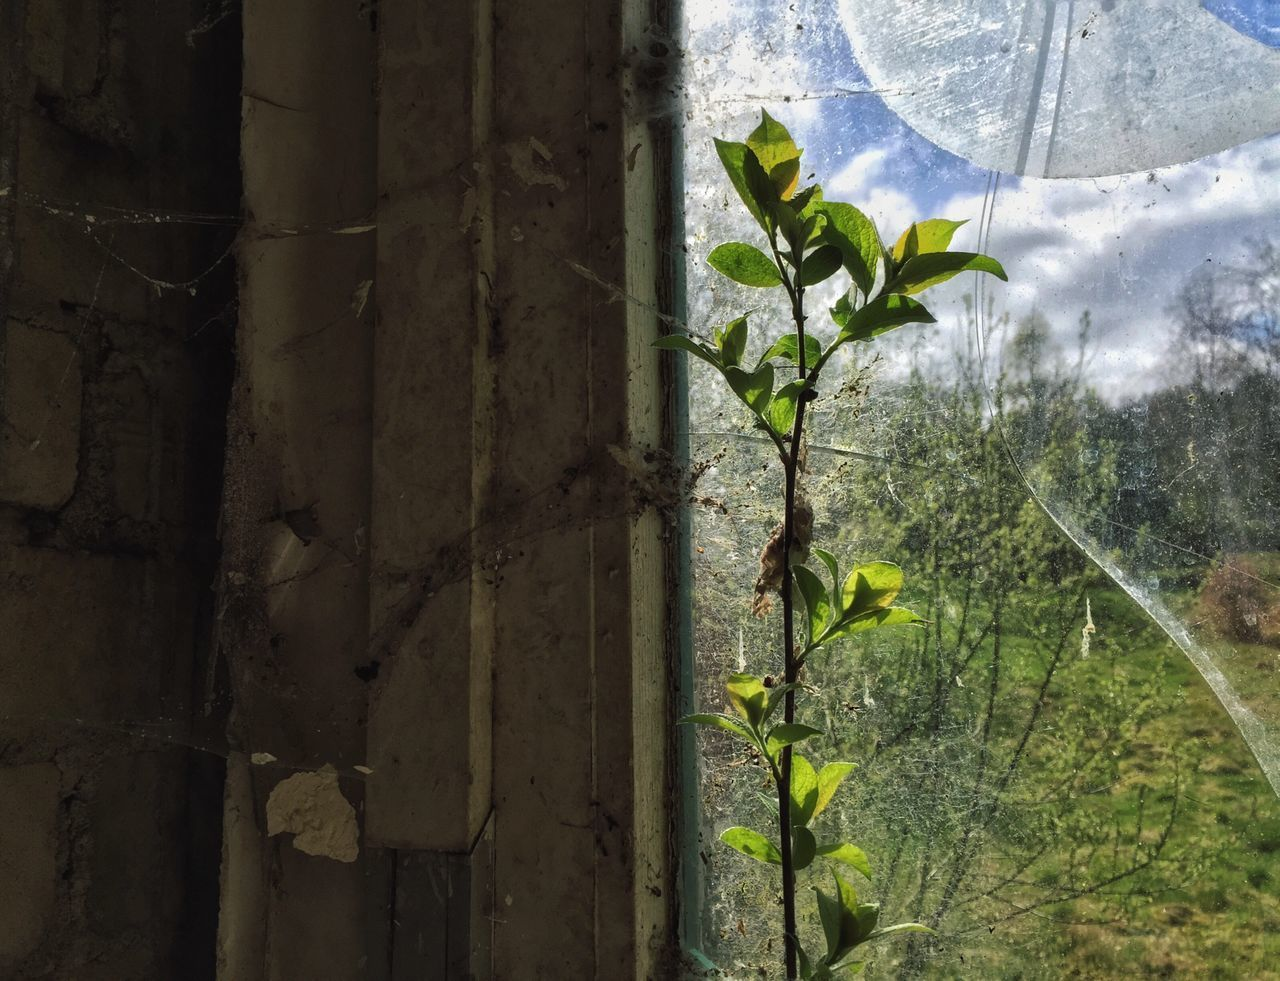 Nature Finds A Way Nature In The City Nature Fights Back Abandoned Abandoned Places Abandoned Buildings Empty Places Empty Empty Building Rotten Rotten Places Broken Glass Broken Window Plant Perspectives Showing Imperfection Decay Forgotten Places  Forgotten